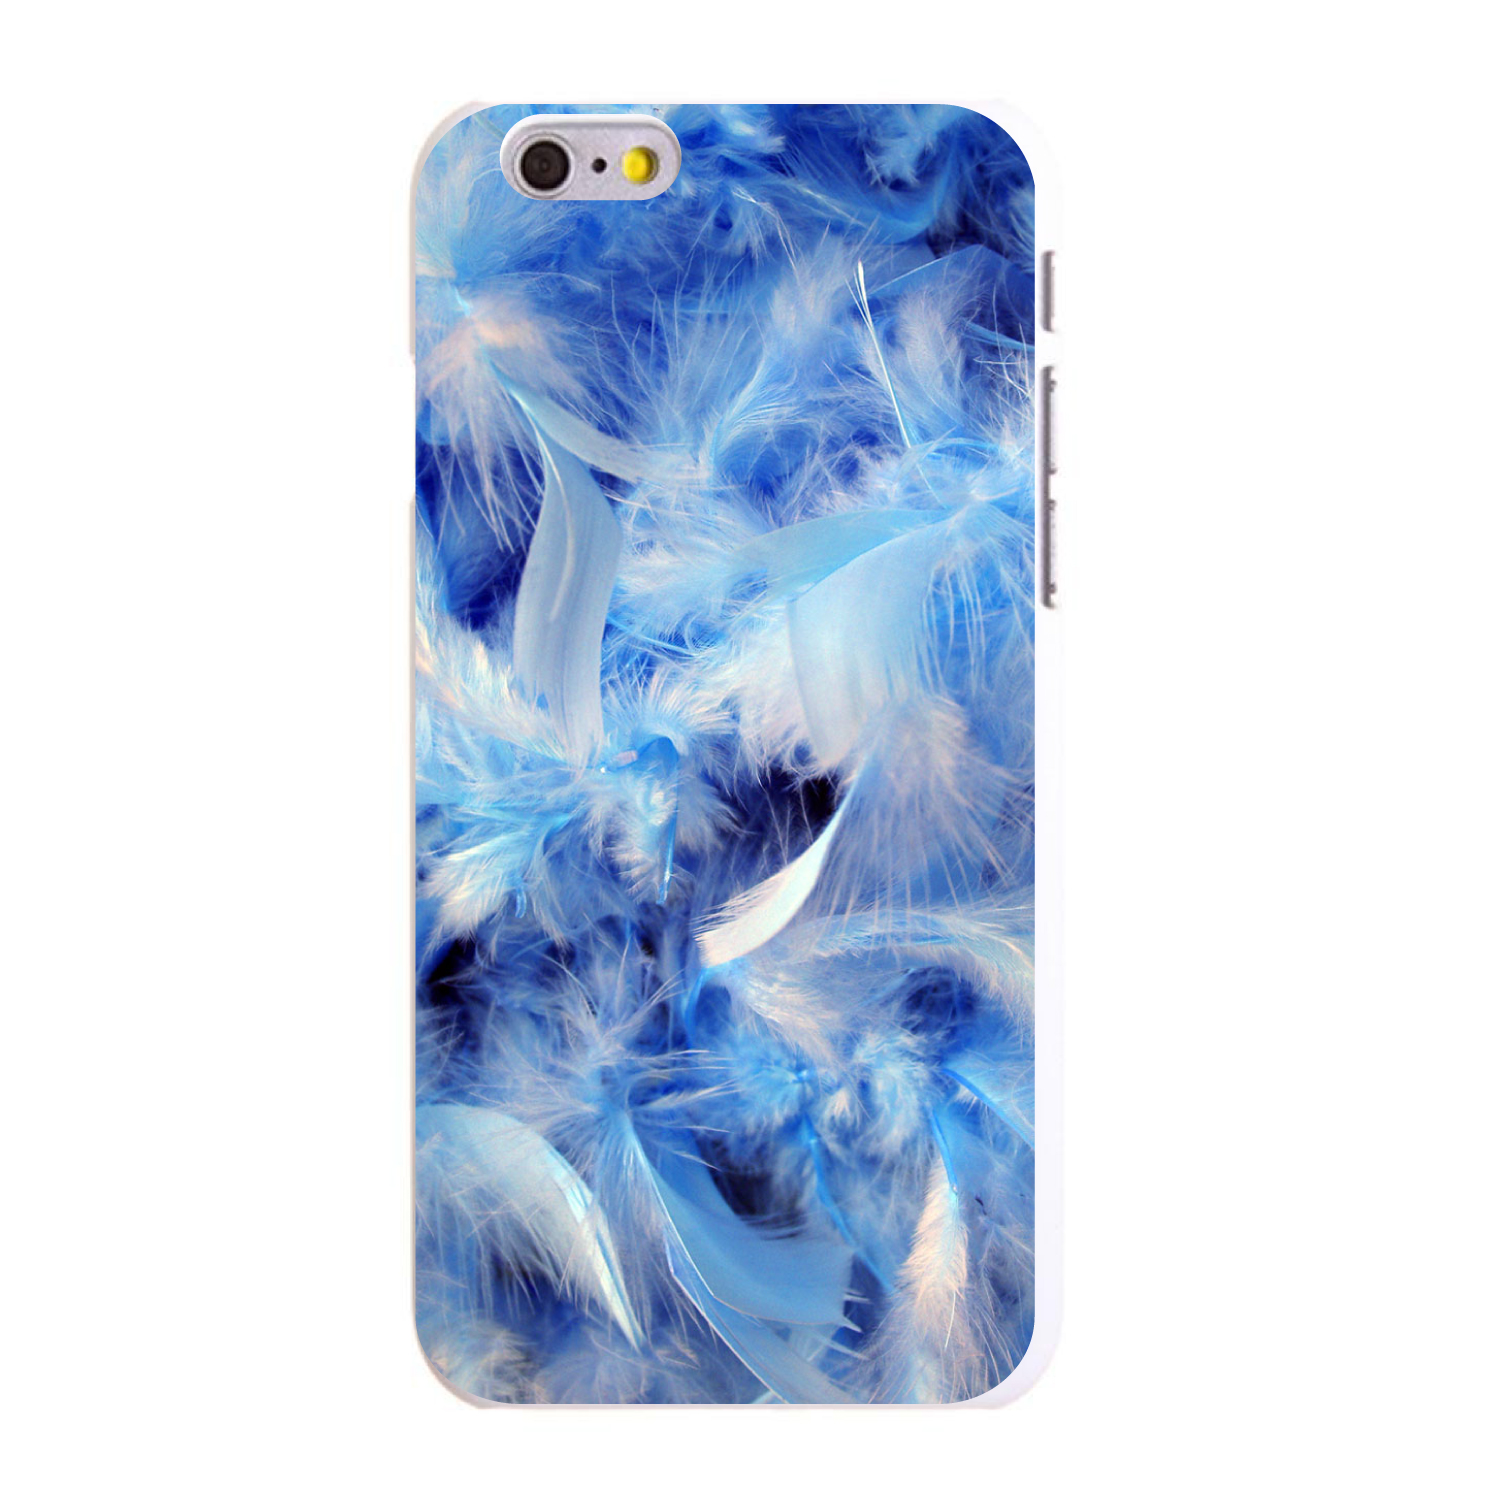 "CUSTOM White Hard Plastic Snap-On Case for Apple iPhone 6 / 6S (4.7"" Screen) - Blue Feathers"